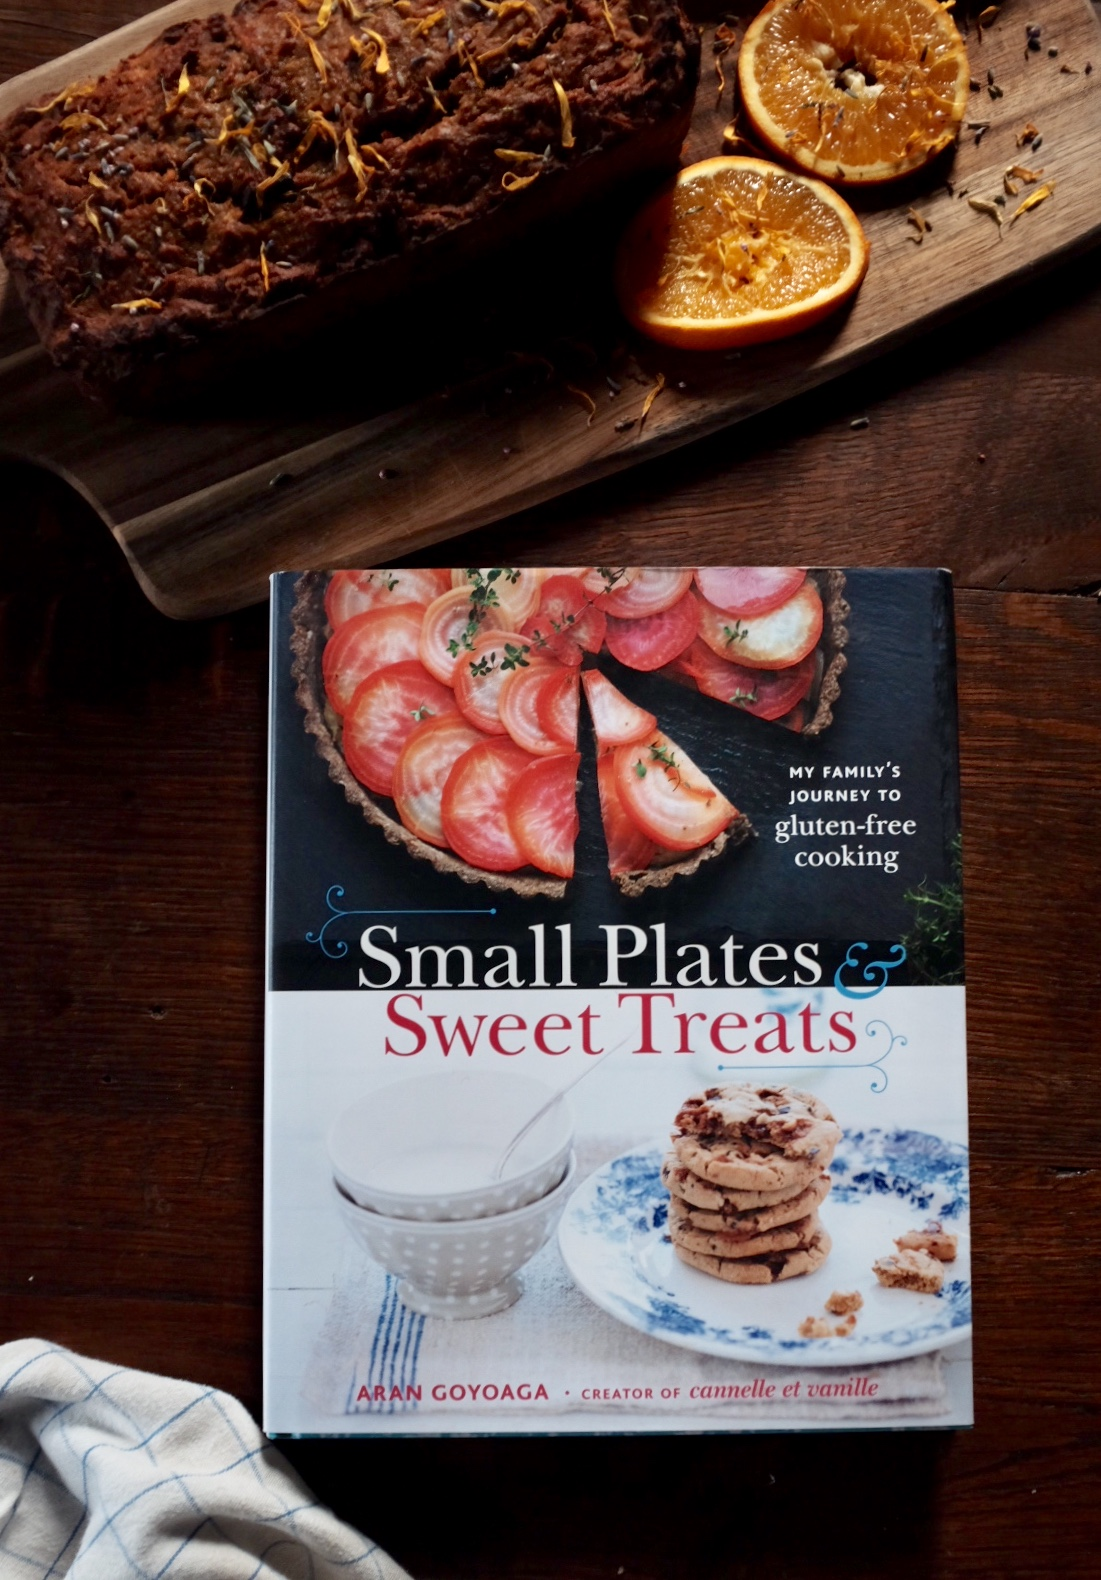 Aran Goyoaga's book - Small Plates & Sweet Treats. My family's journey to gluten-free cooking, published by Little, Brown (2012)